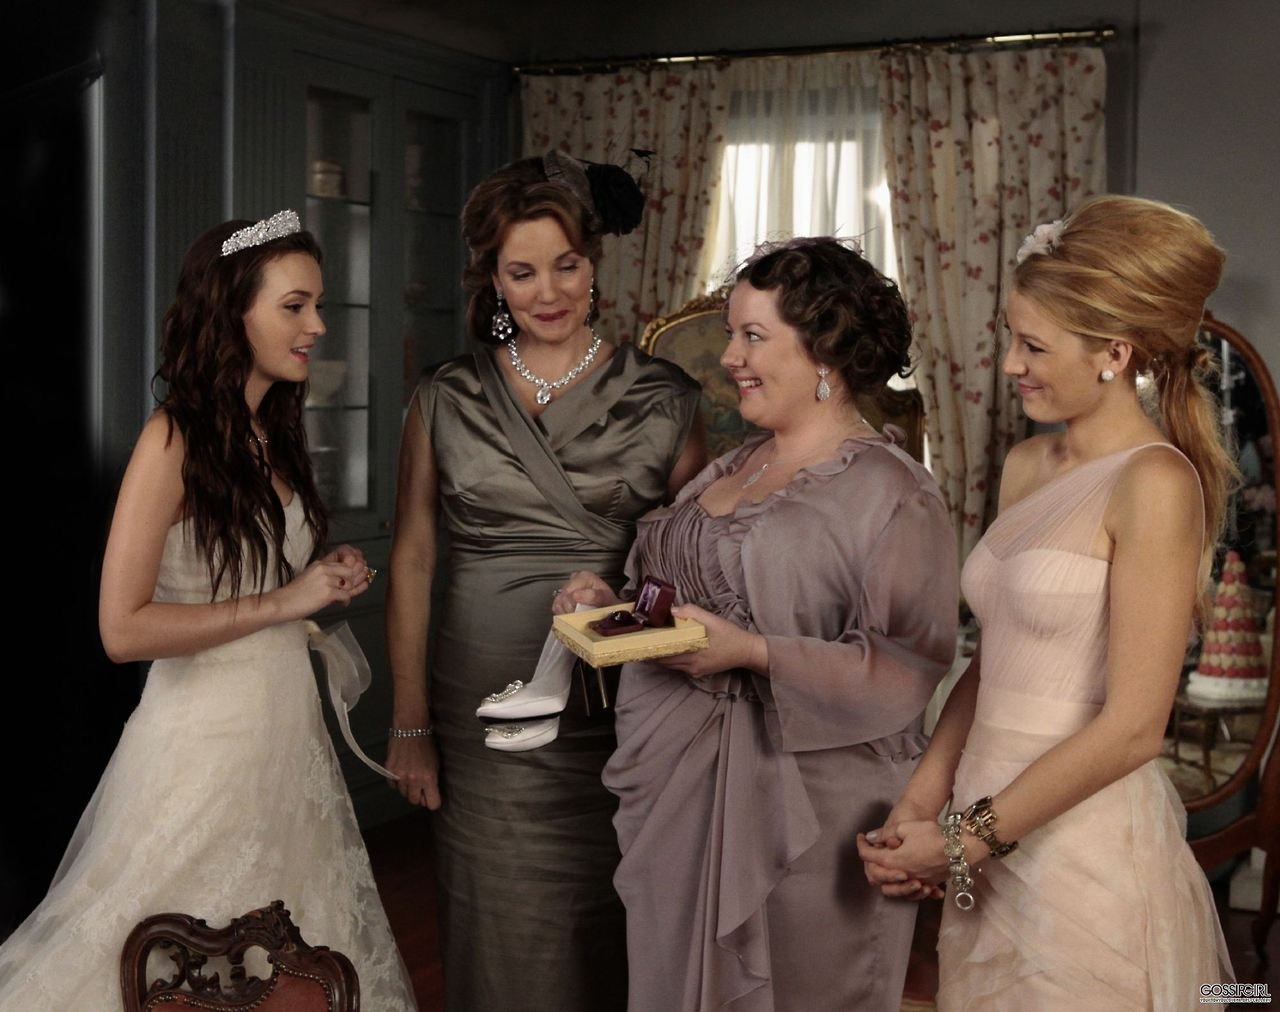 Gossip Girl :). Just watched this episode the other day.